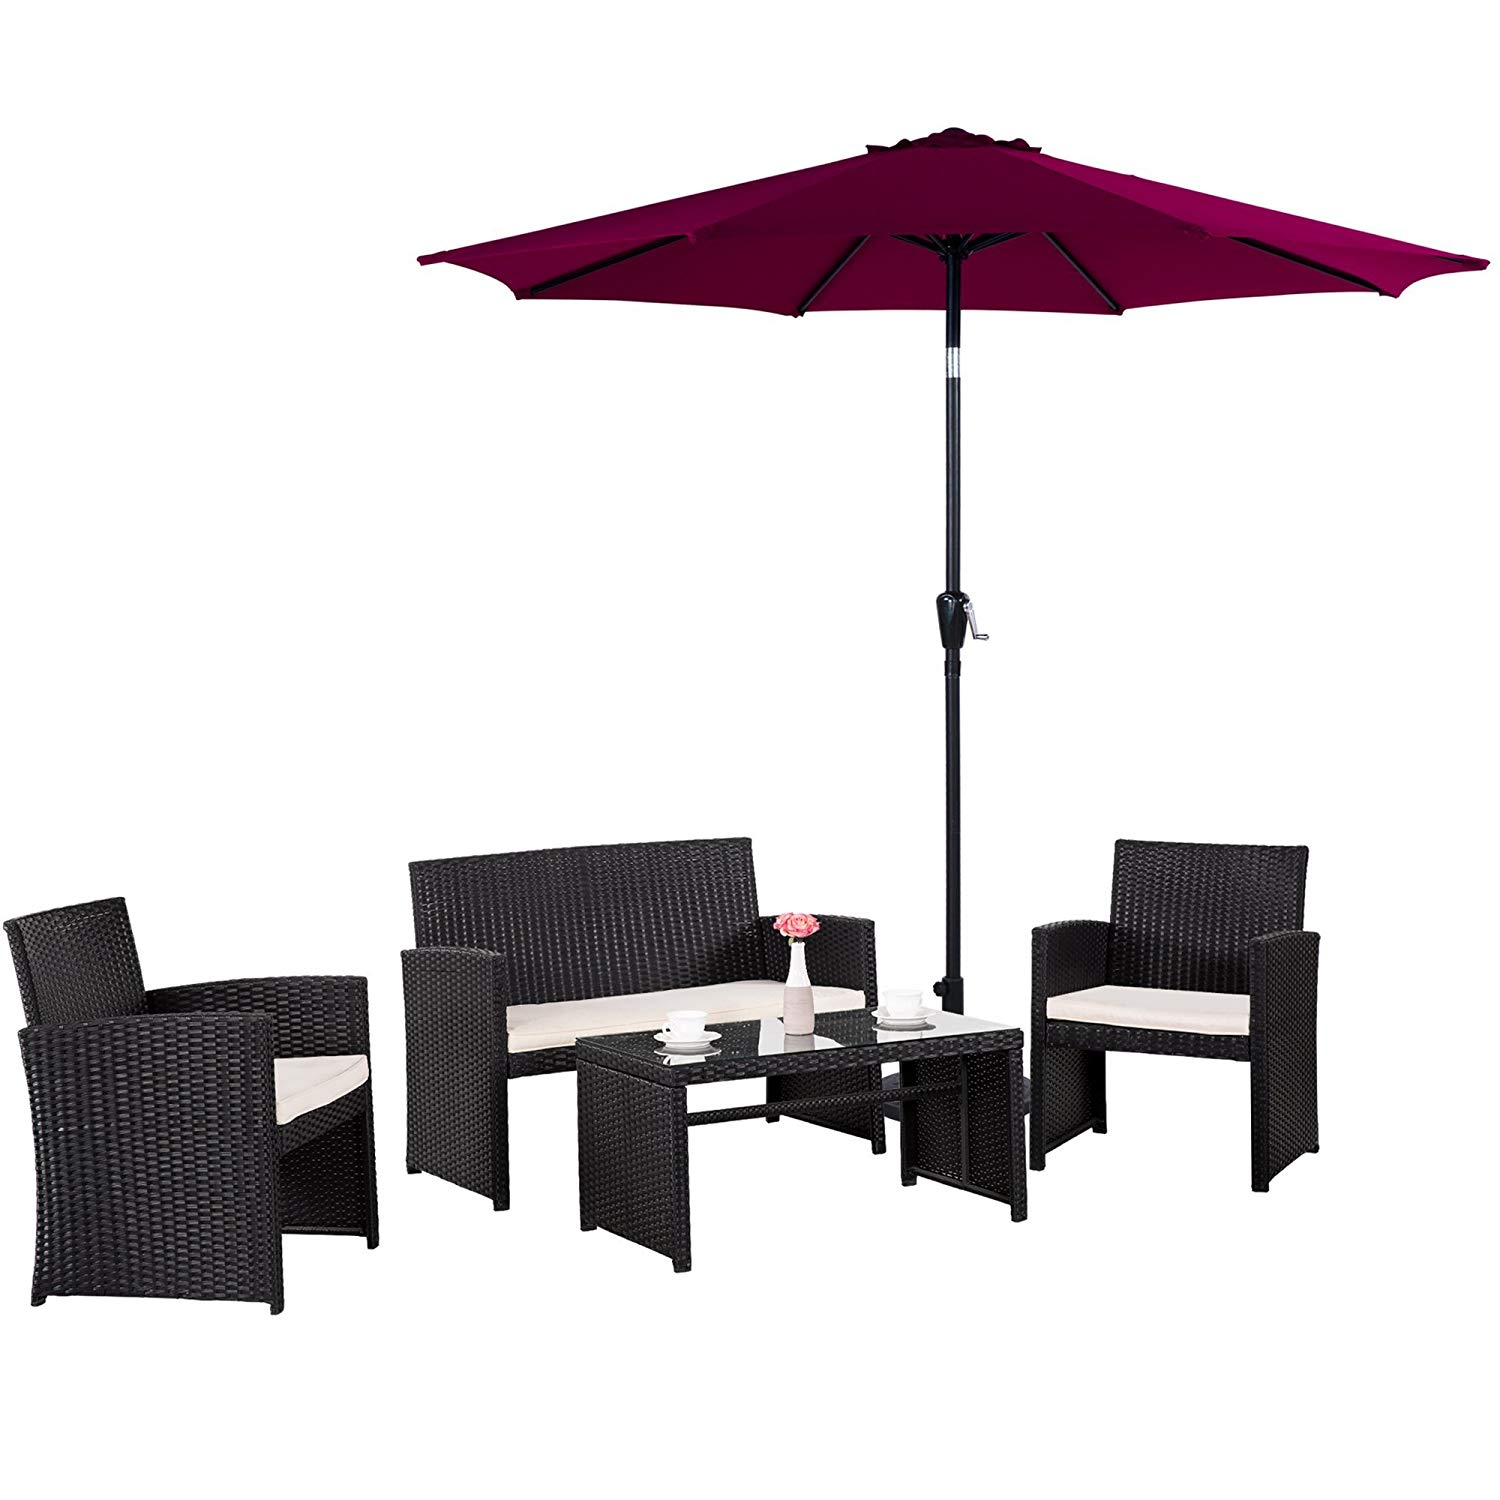 Cloud Mountain 5 Piece Wicker Furniture Set Patio Conversation Set Outdoor Umbrella Rattan Garden Lawn PE Rattan Furniture Sofa Cushioned Seat Chat Set, Black Rattan Creamy White Cushions